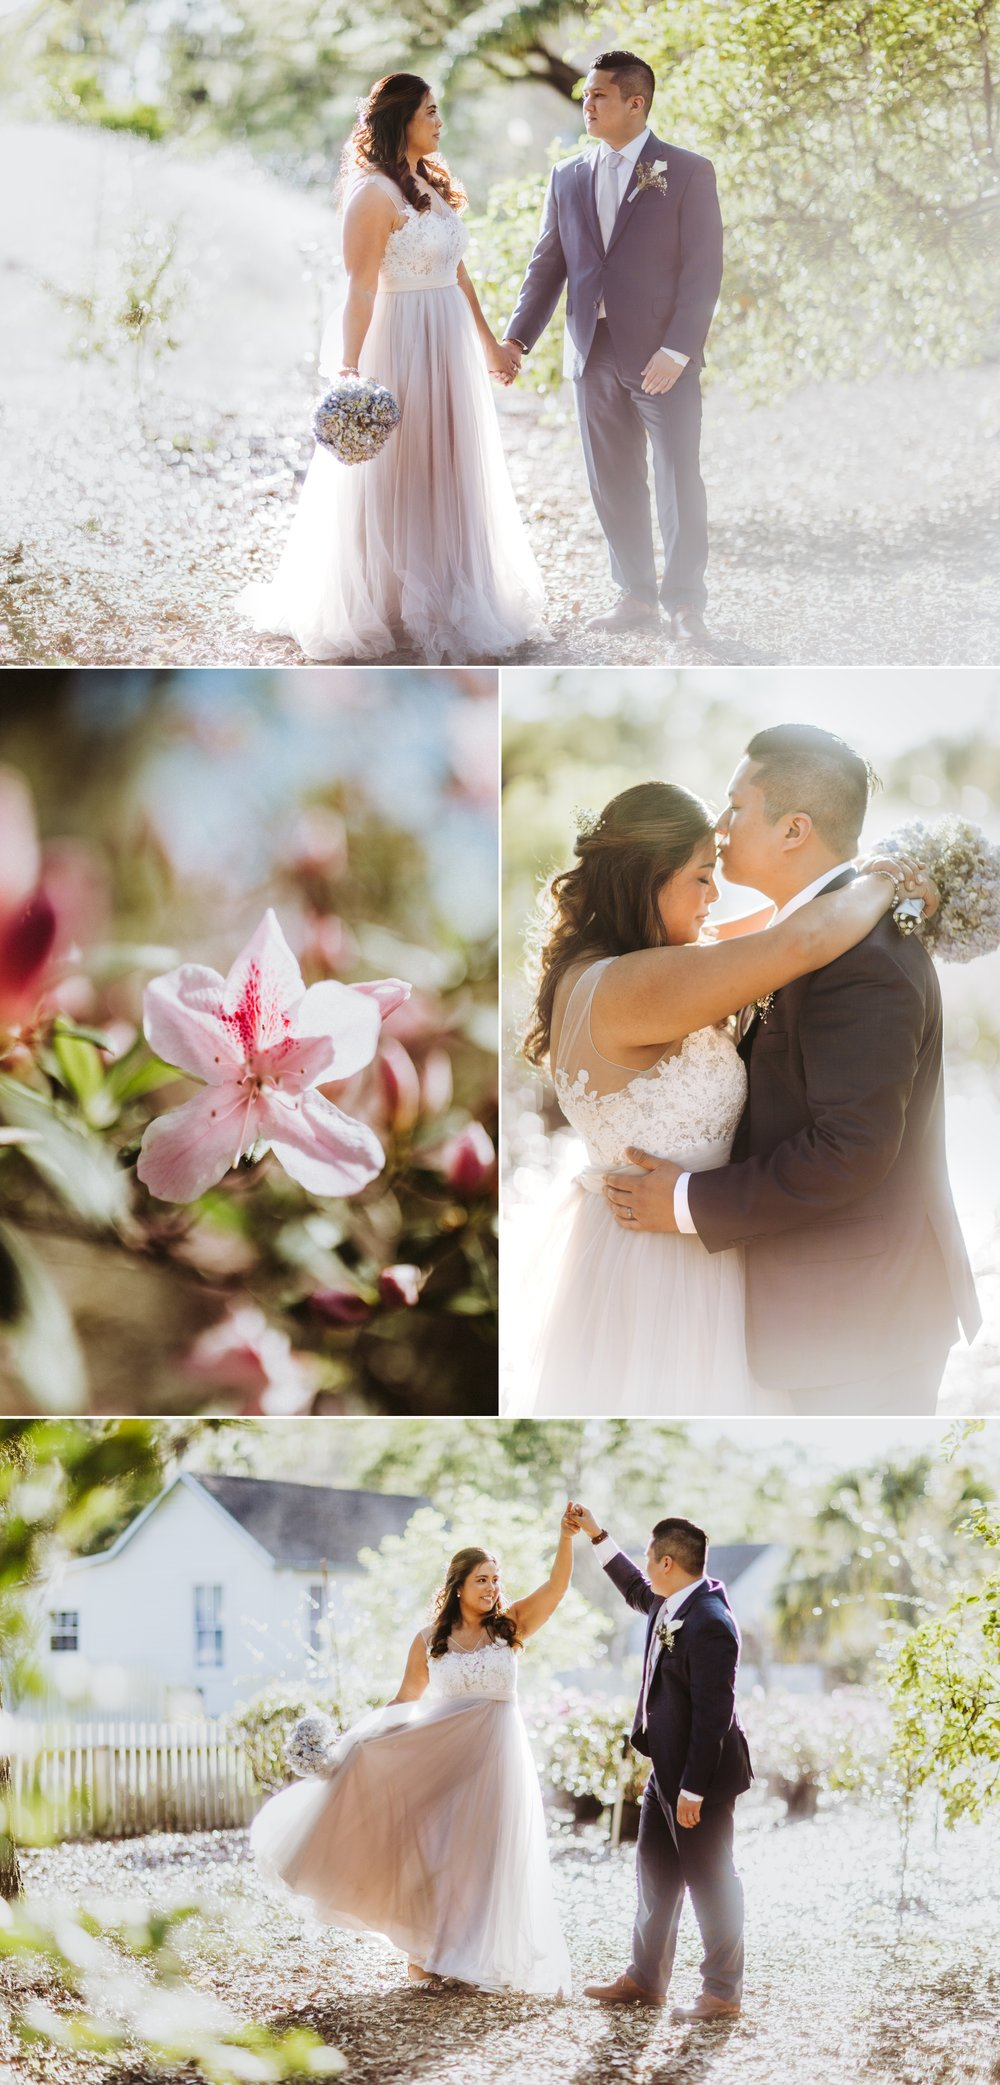 Romantic Leu Gardens Wedding Pictures - Winter Park Wedding Photographer Shaina DeCiryan- Effie+Phillip8.jpg